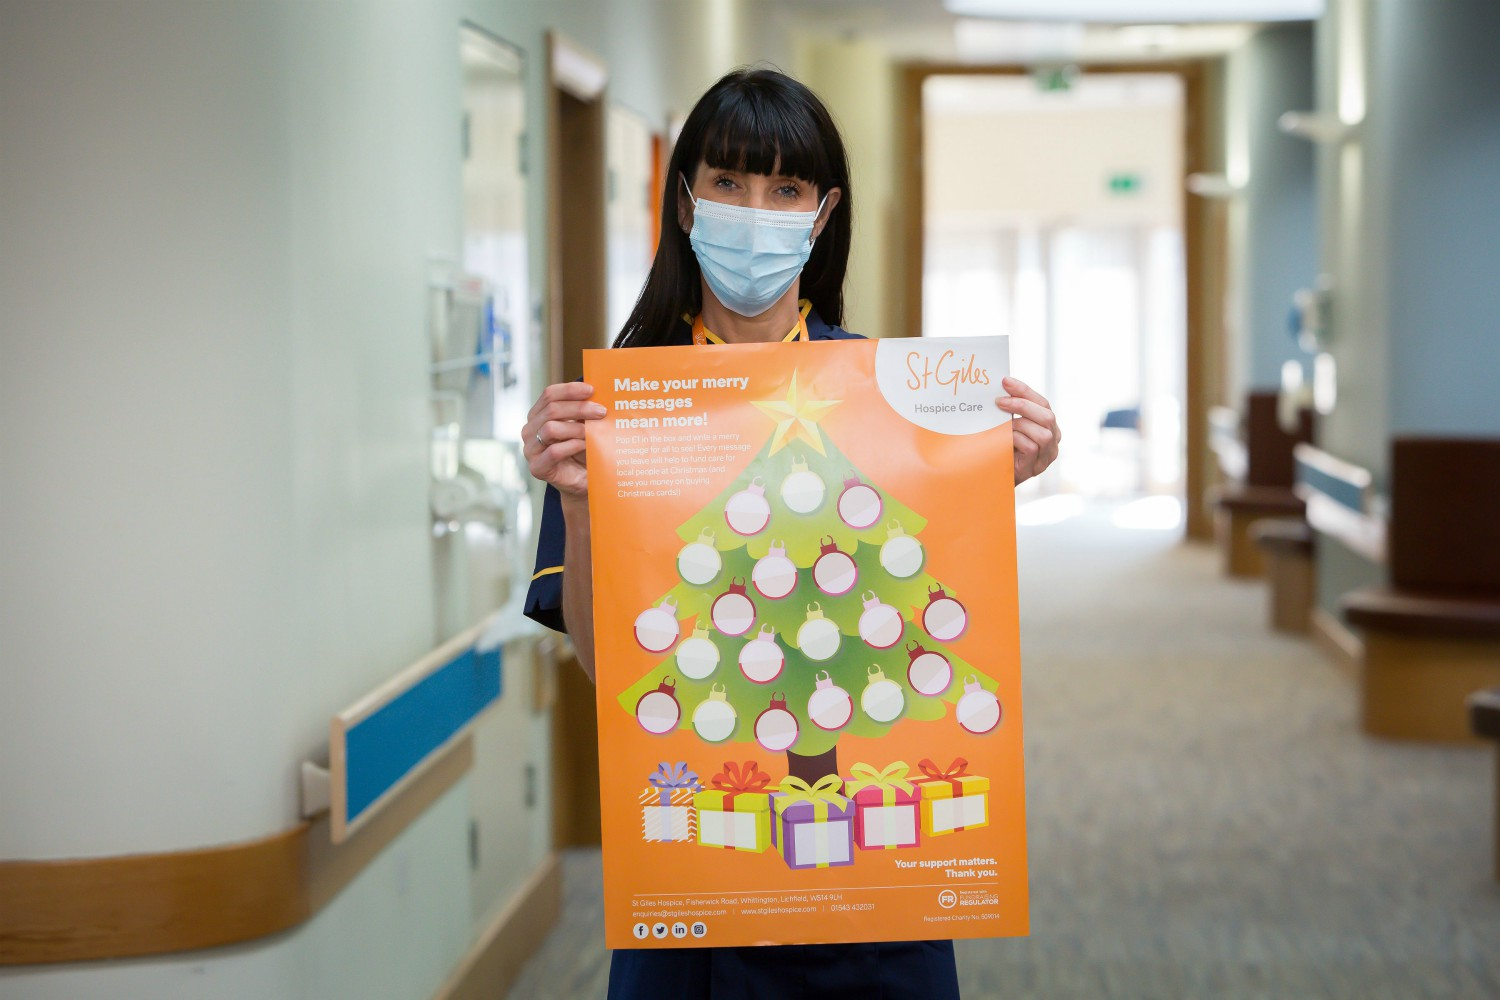 Give the gift of care by supporting Katie's Christmas Appeal